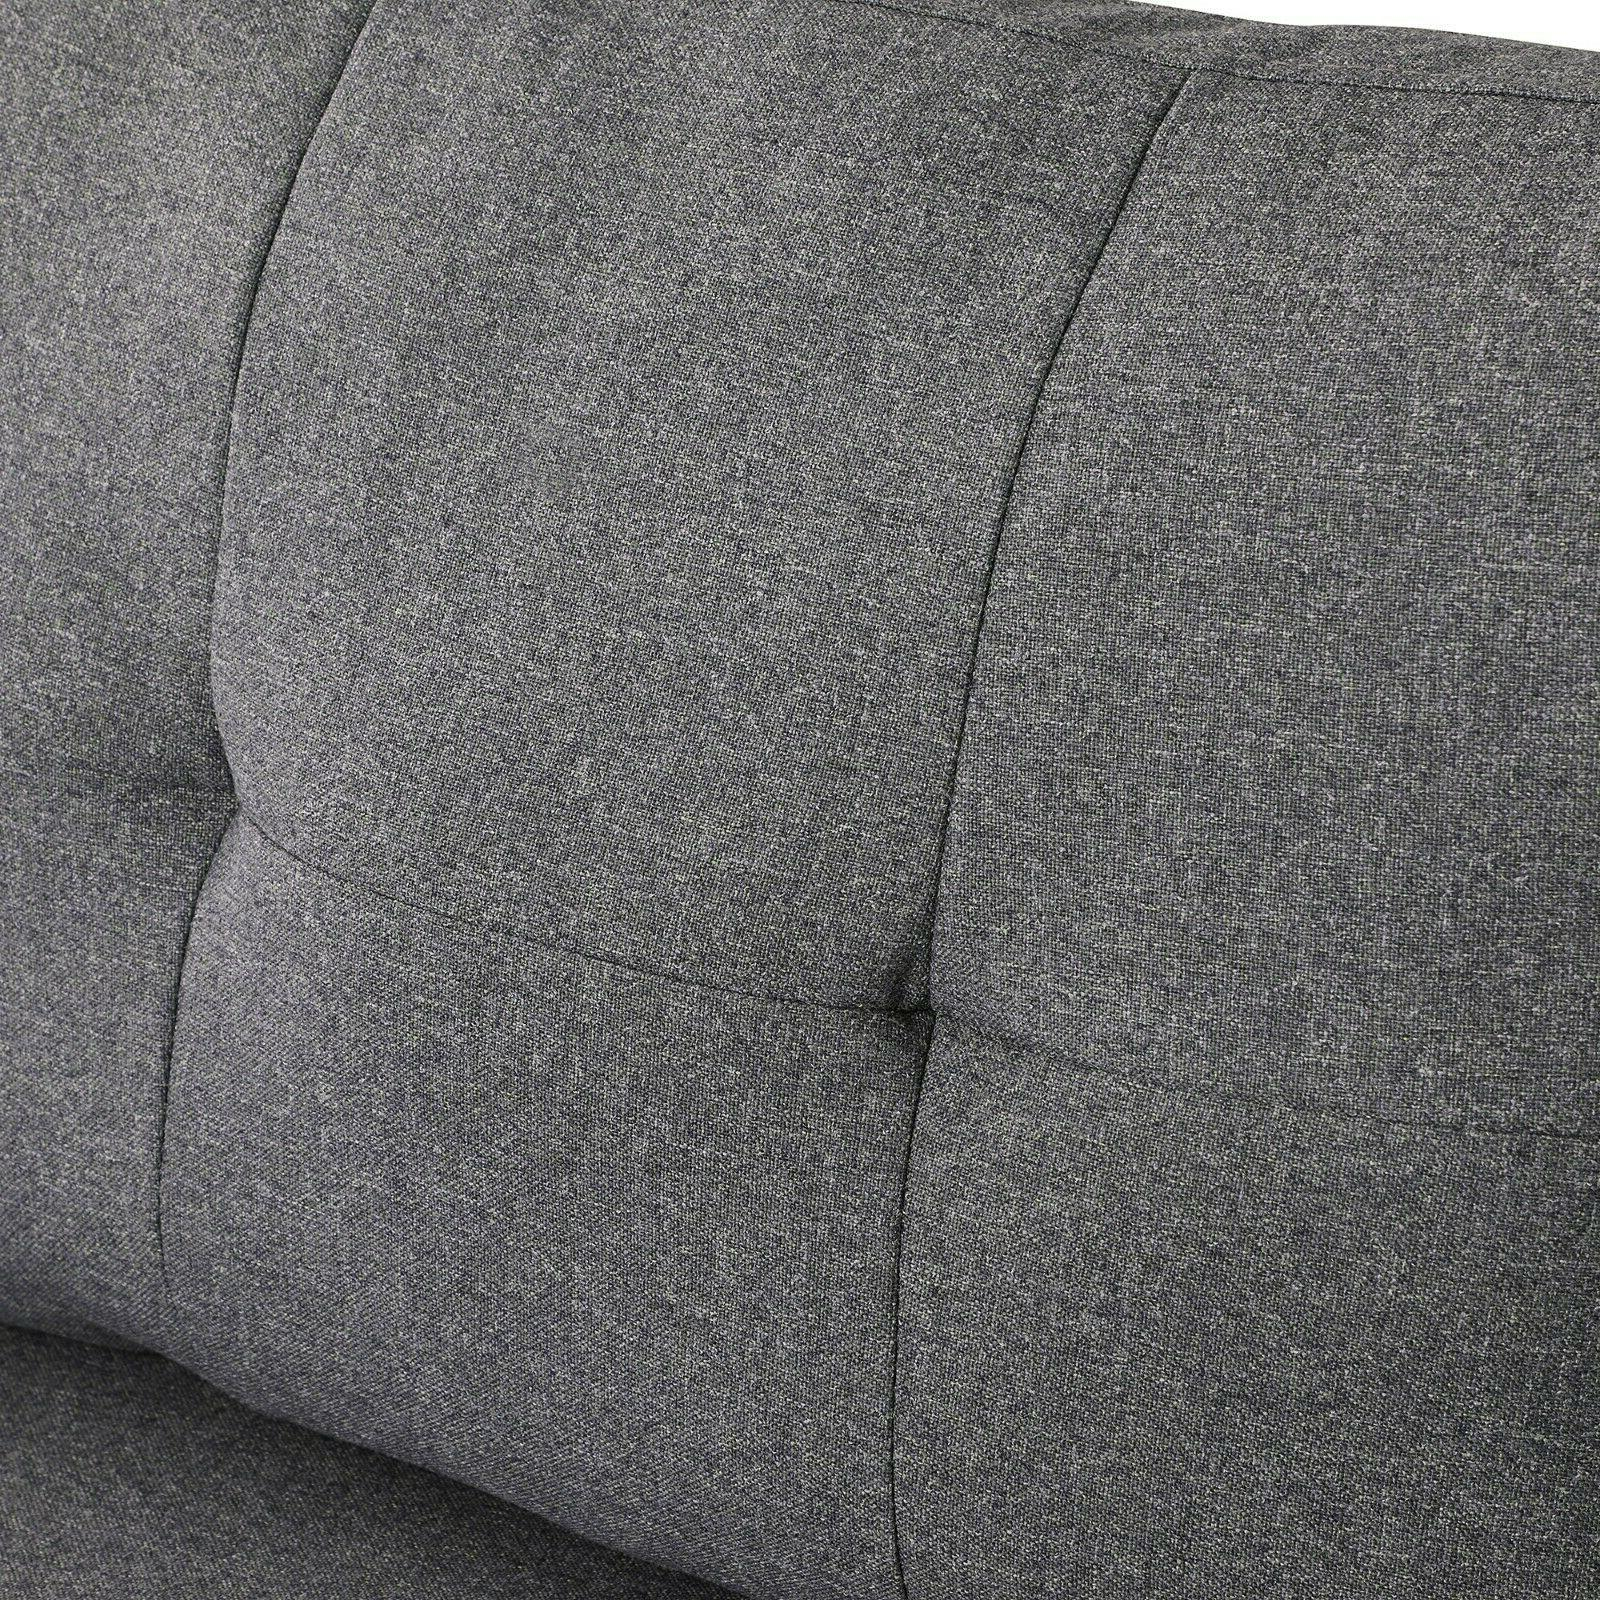 4-Seaters Storage Pillows Upholstered Fabric